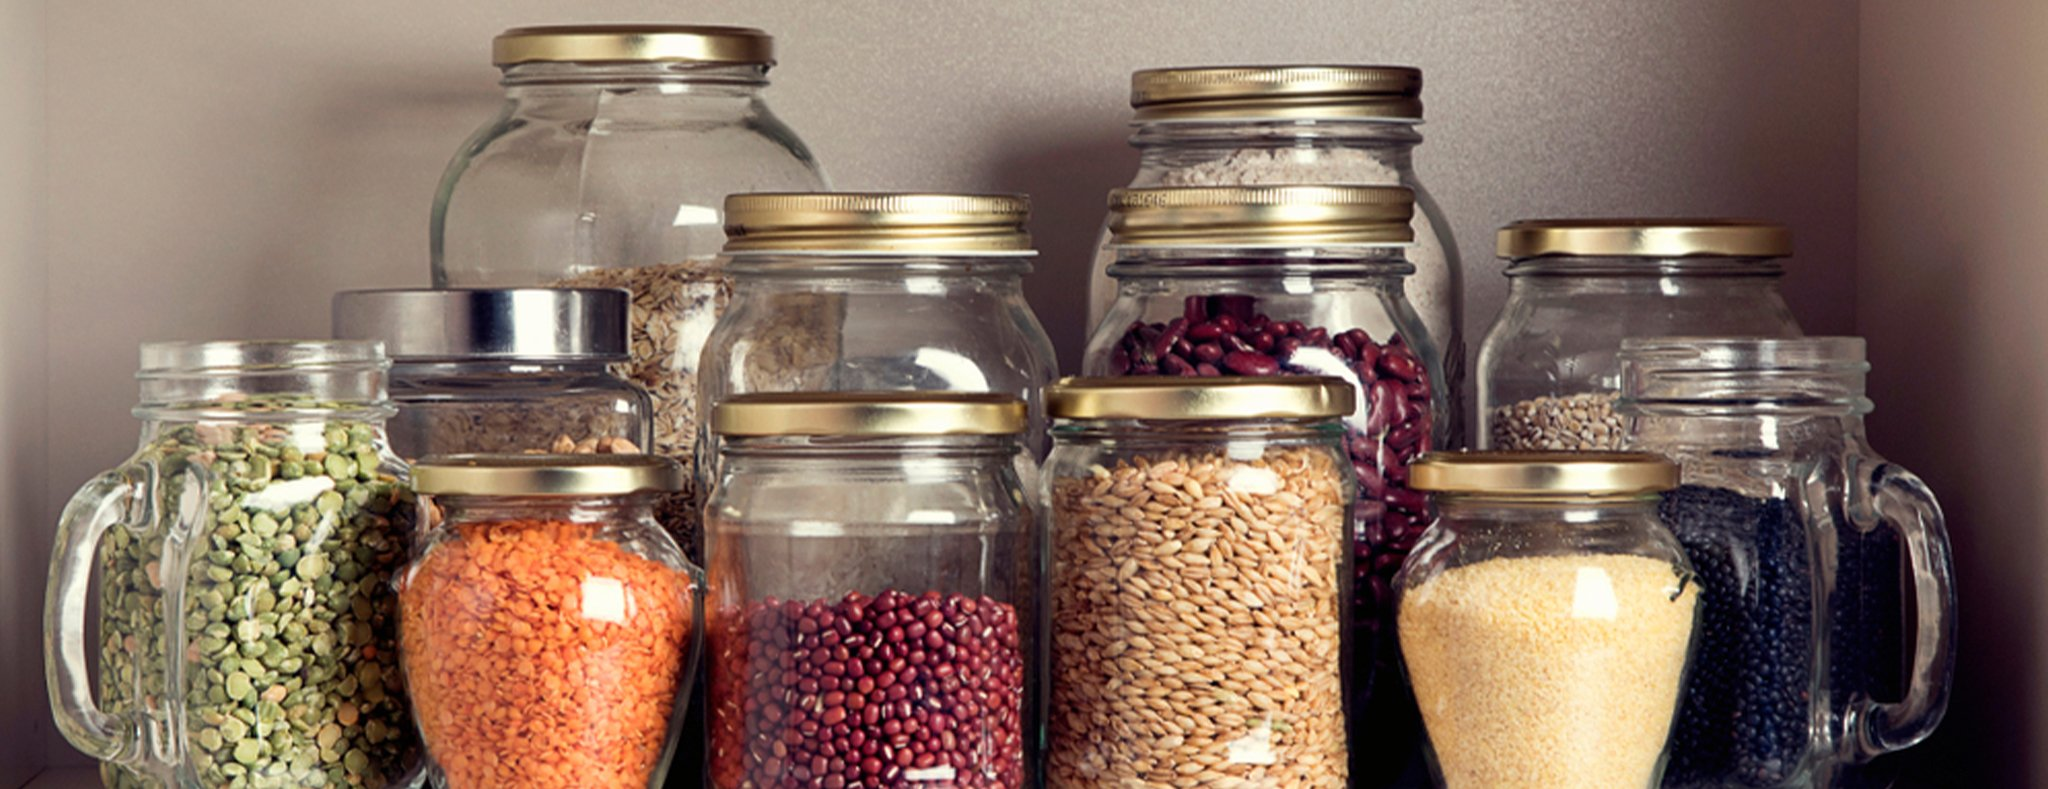 Keep the Pantry Stocked